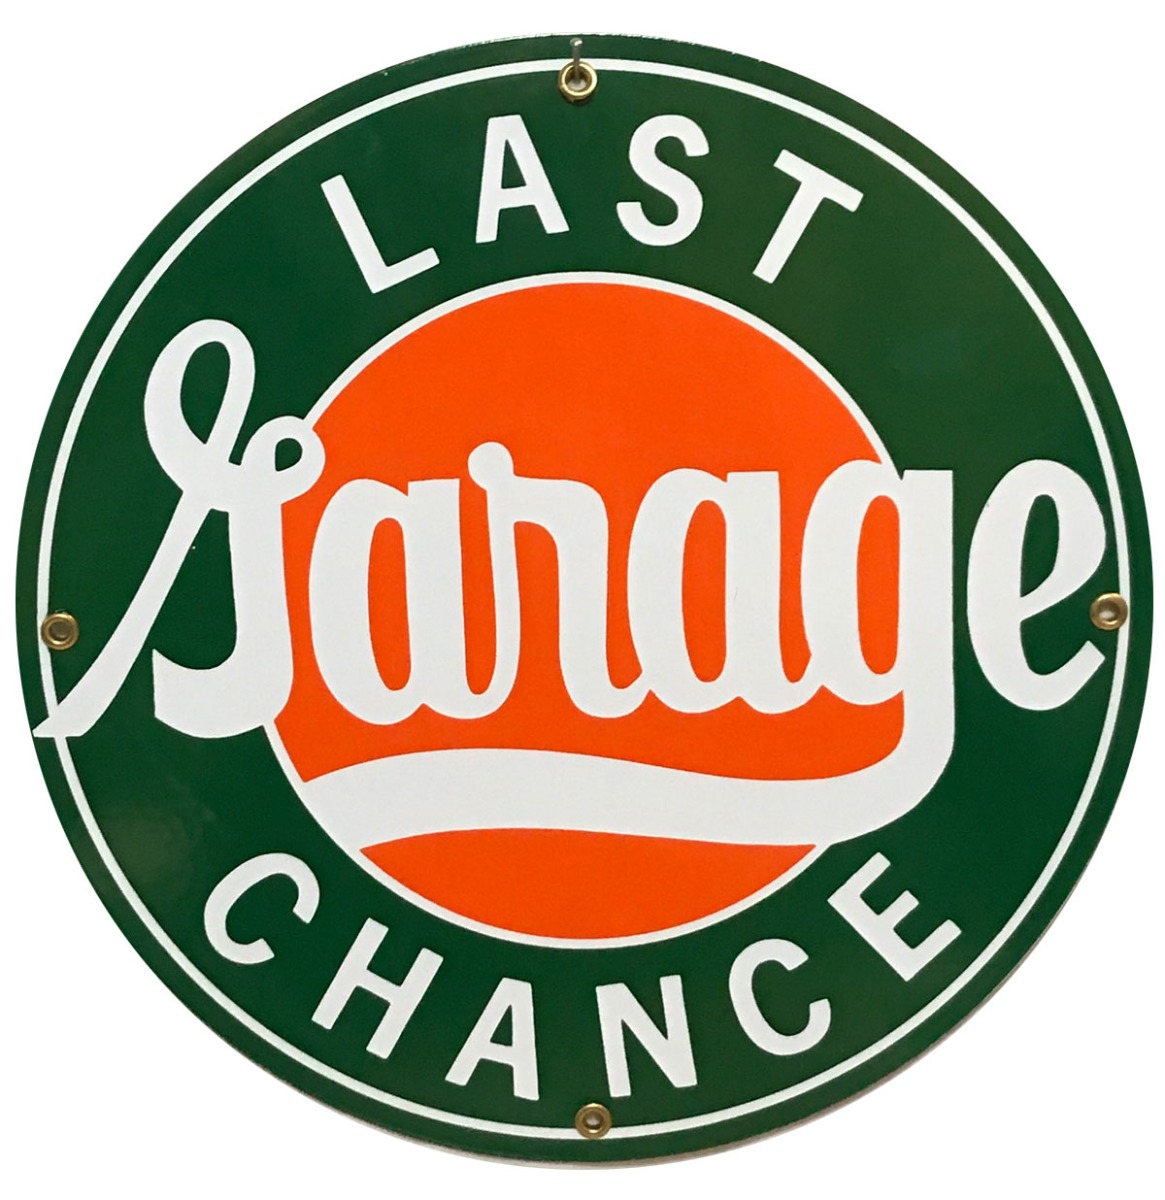 Last Chance Garage Emaille Bord 12 - 30 cm